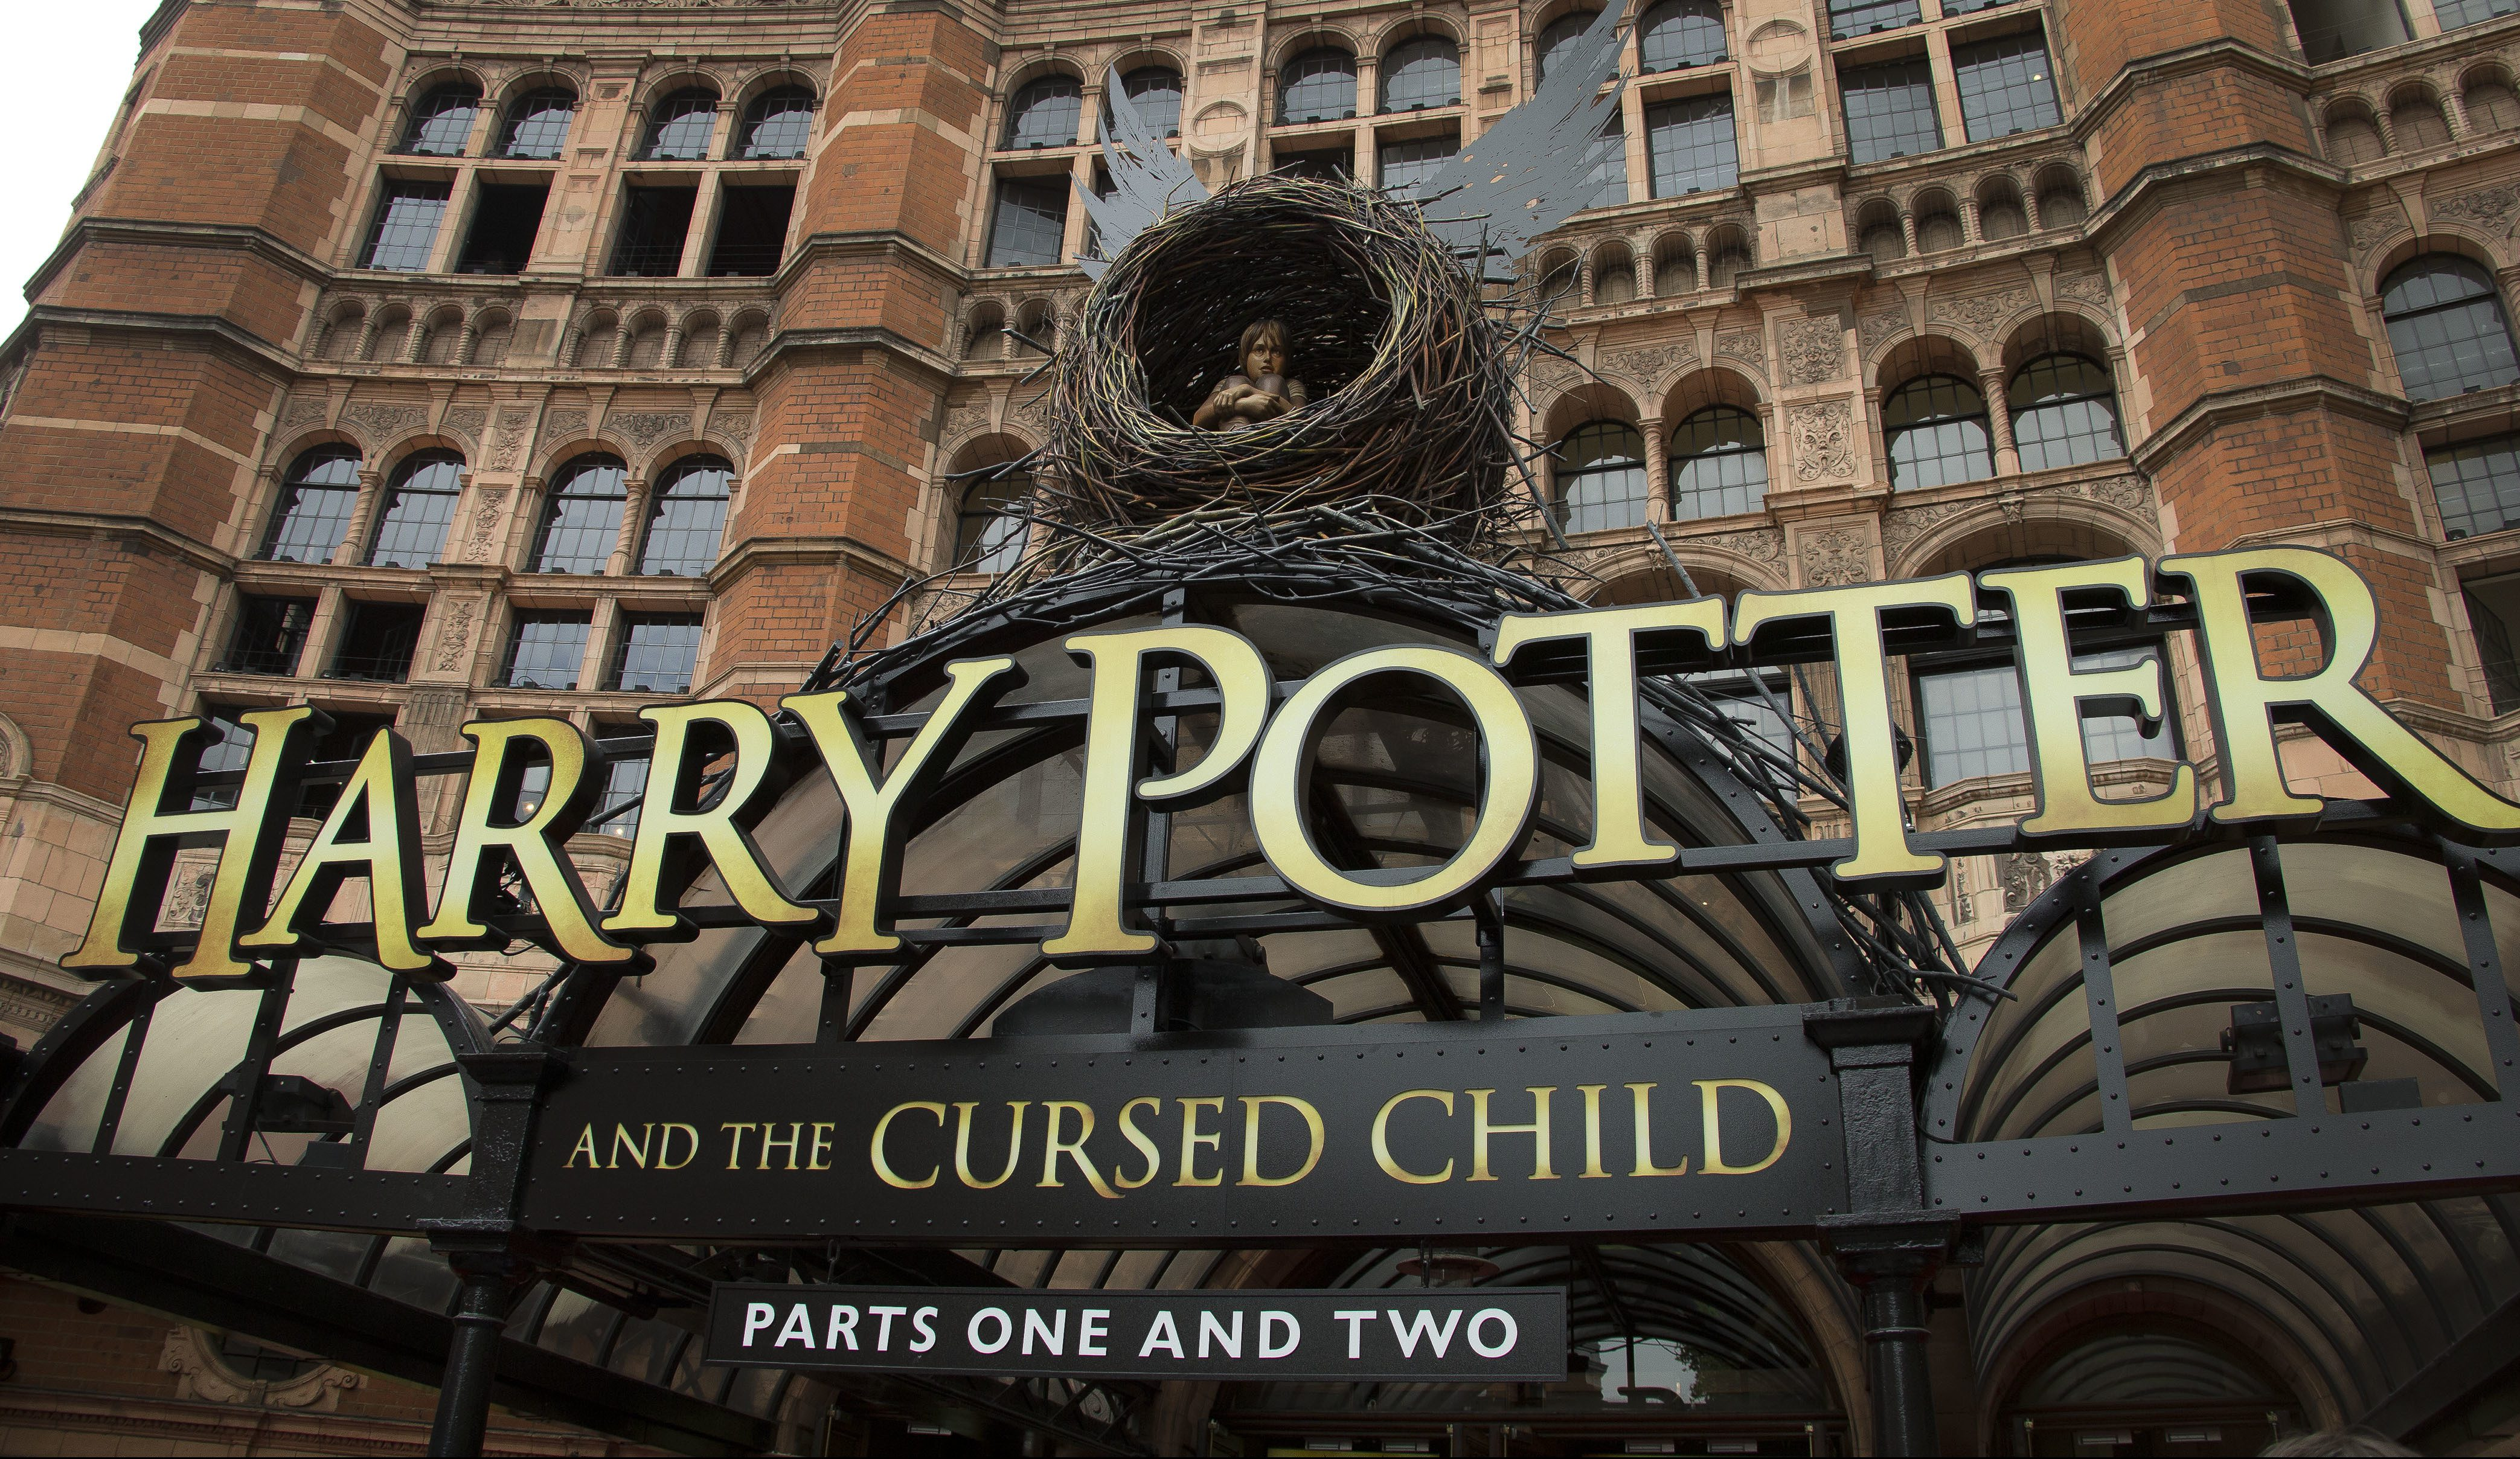 Harry Potter and the Cursed Child moves to Broadway